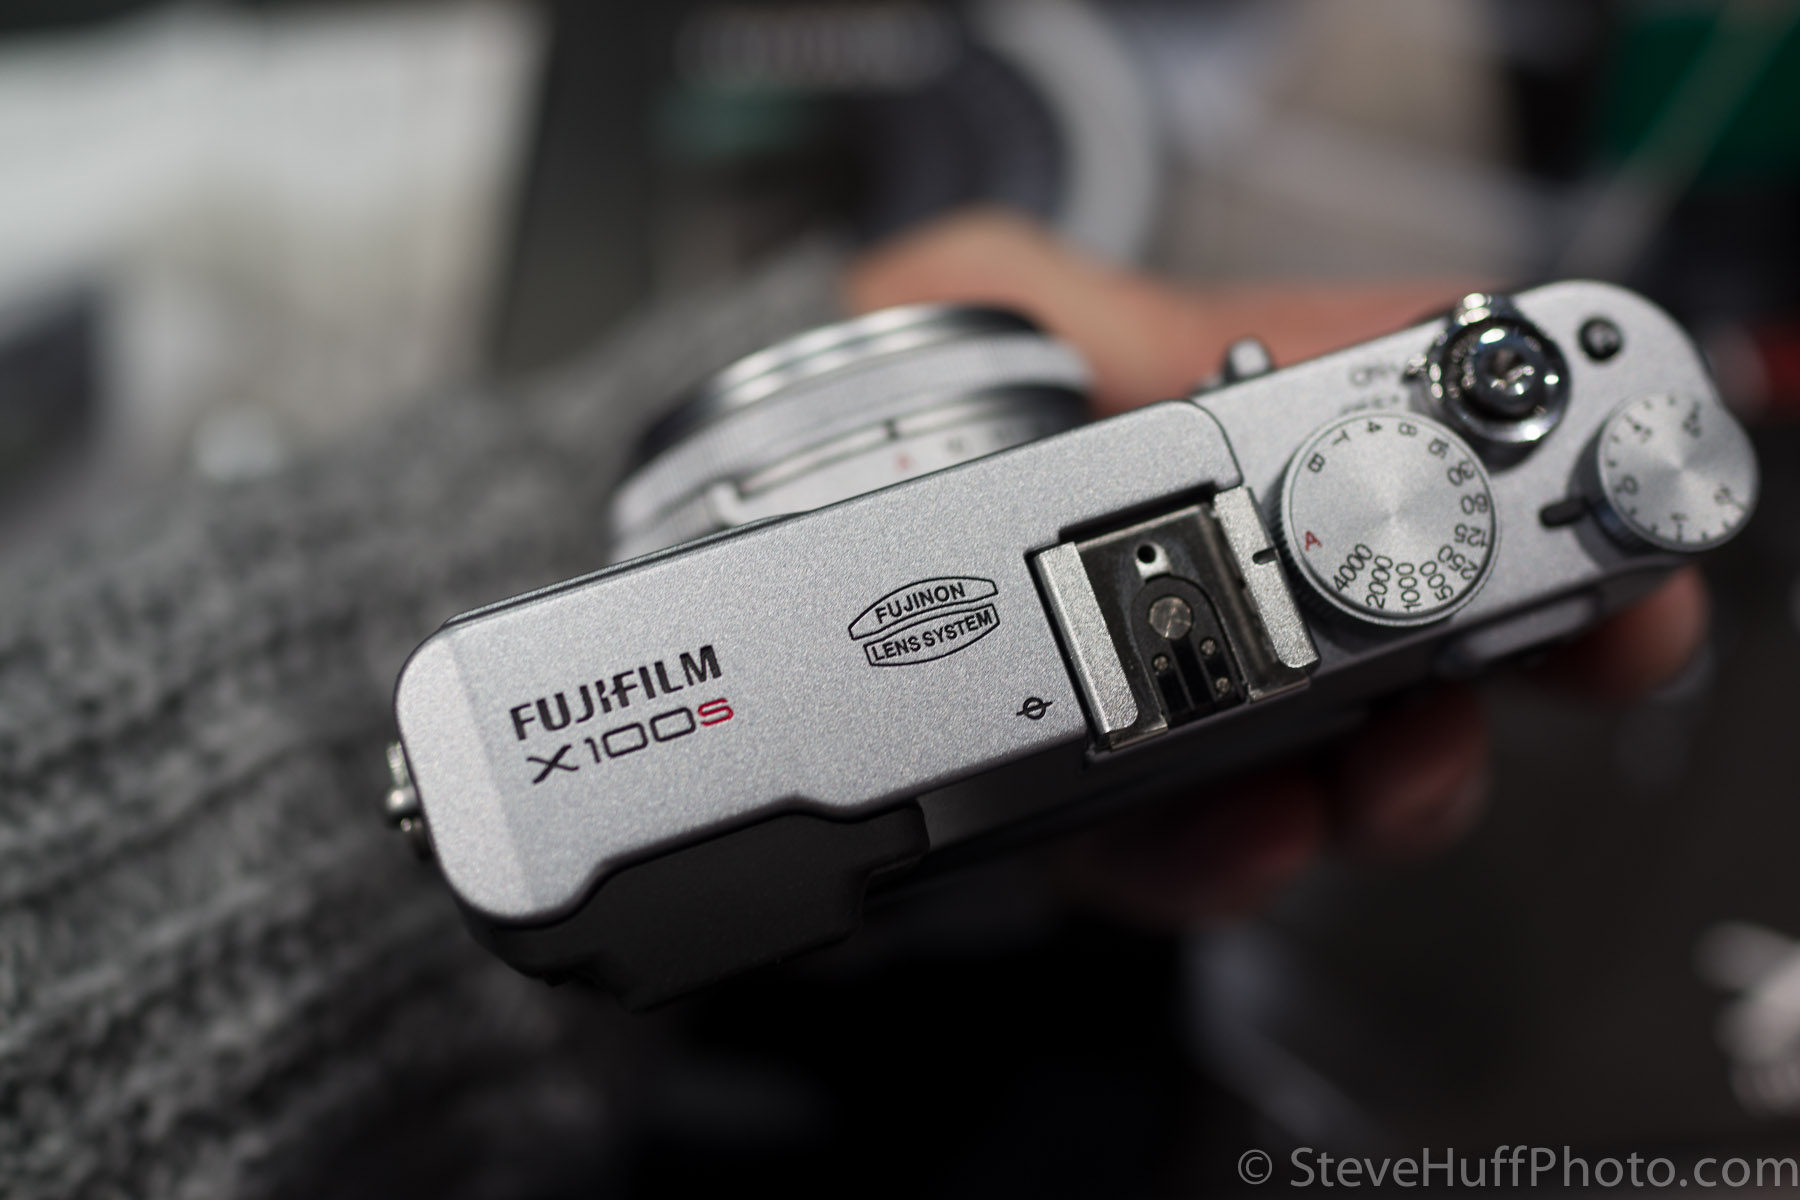 fuji x100s manual focus and auto focus demo and explanation video rh stevehuffphoto com fuji x100 manual focus ring fujifilm x100s manual focus